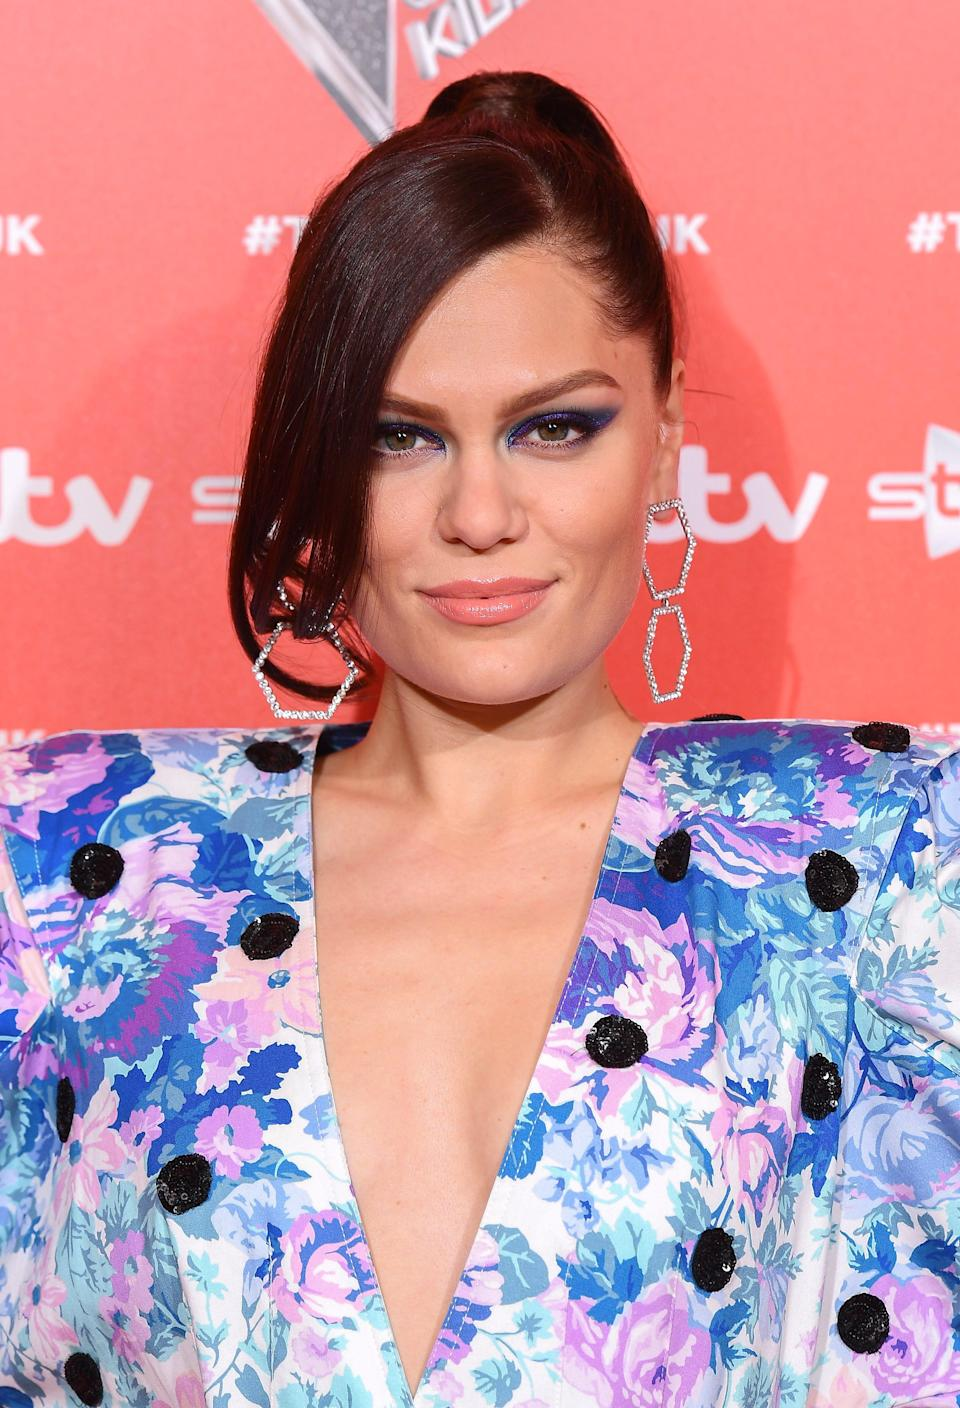 Jessie J attends a photocall to launch the new series of